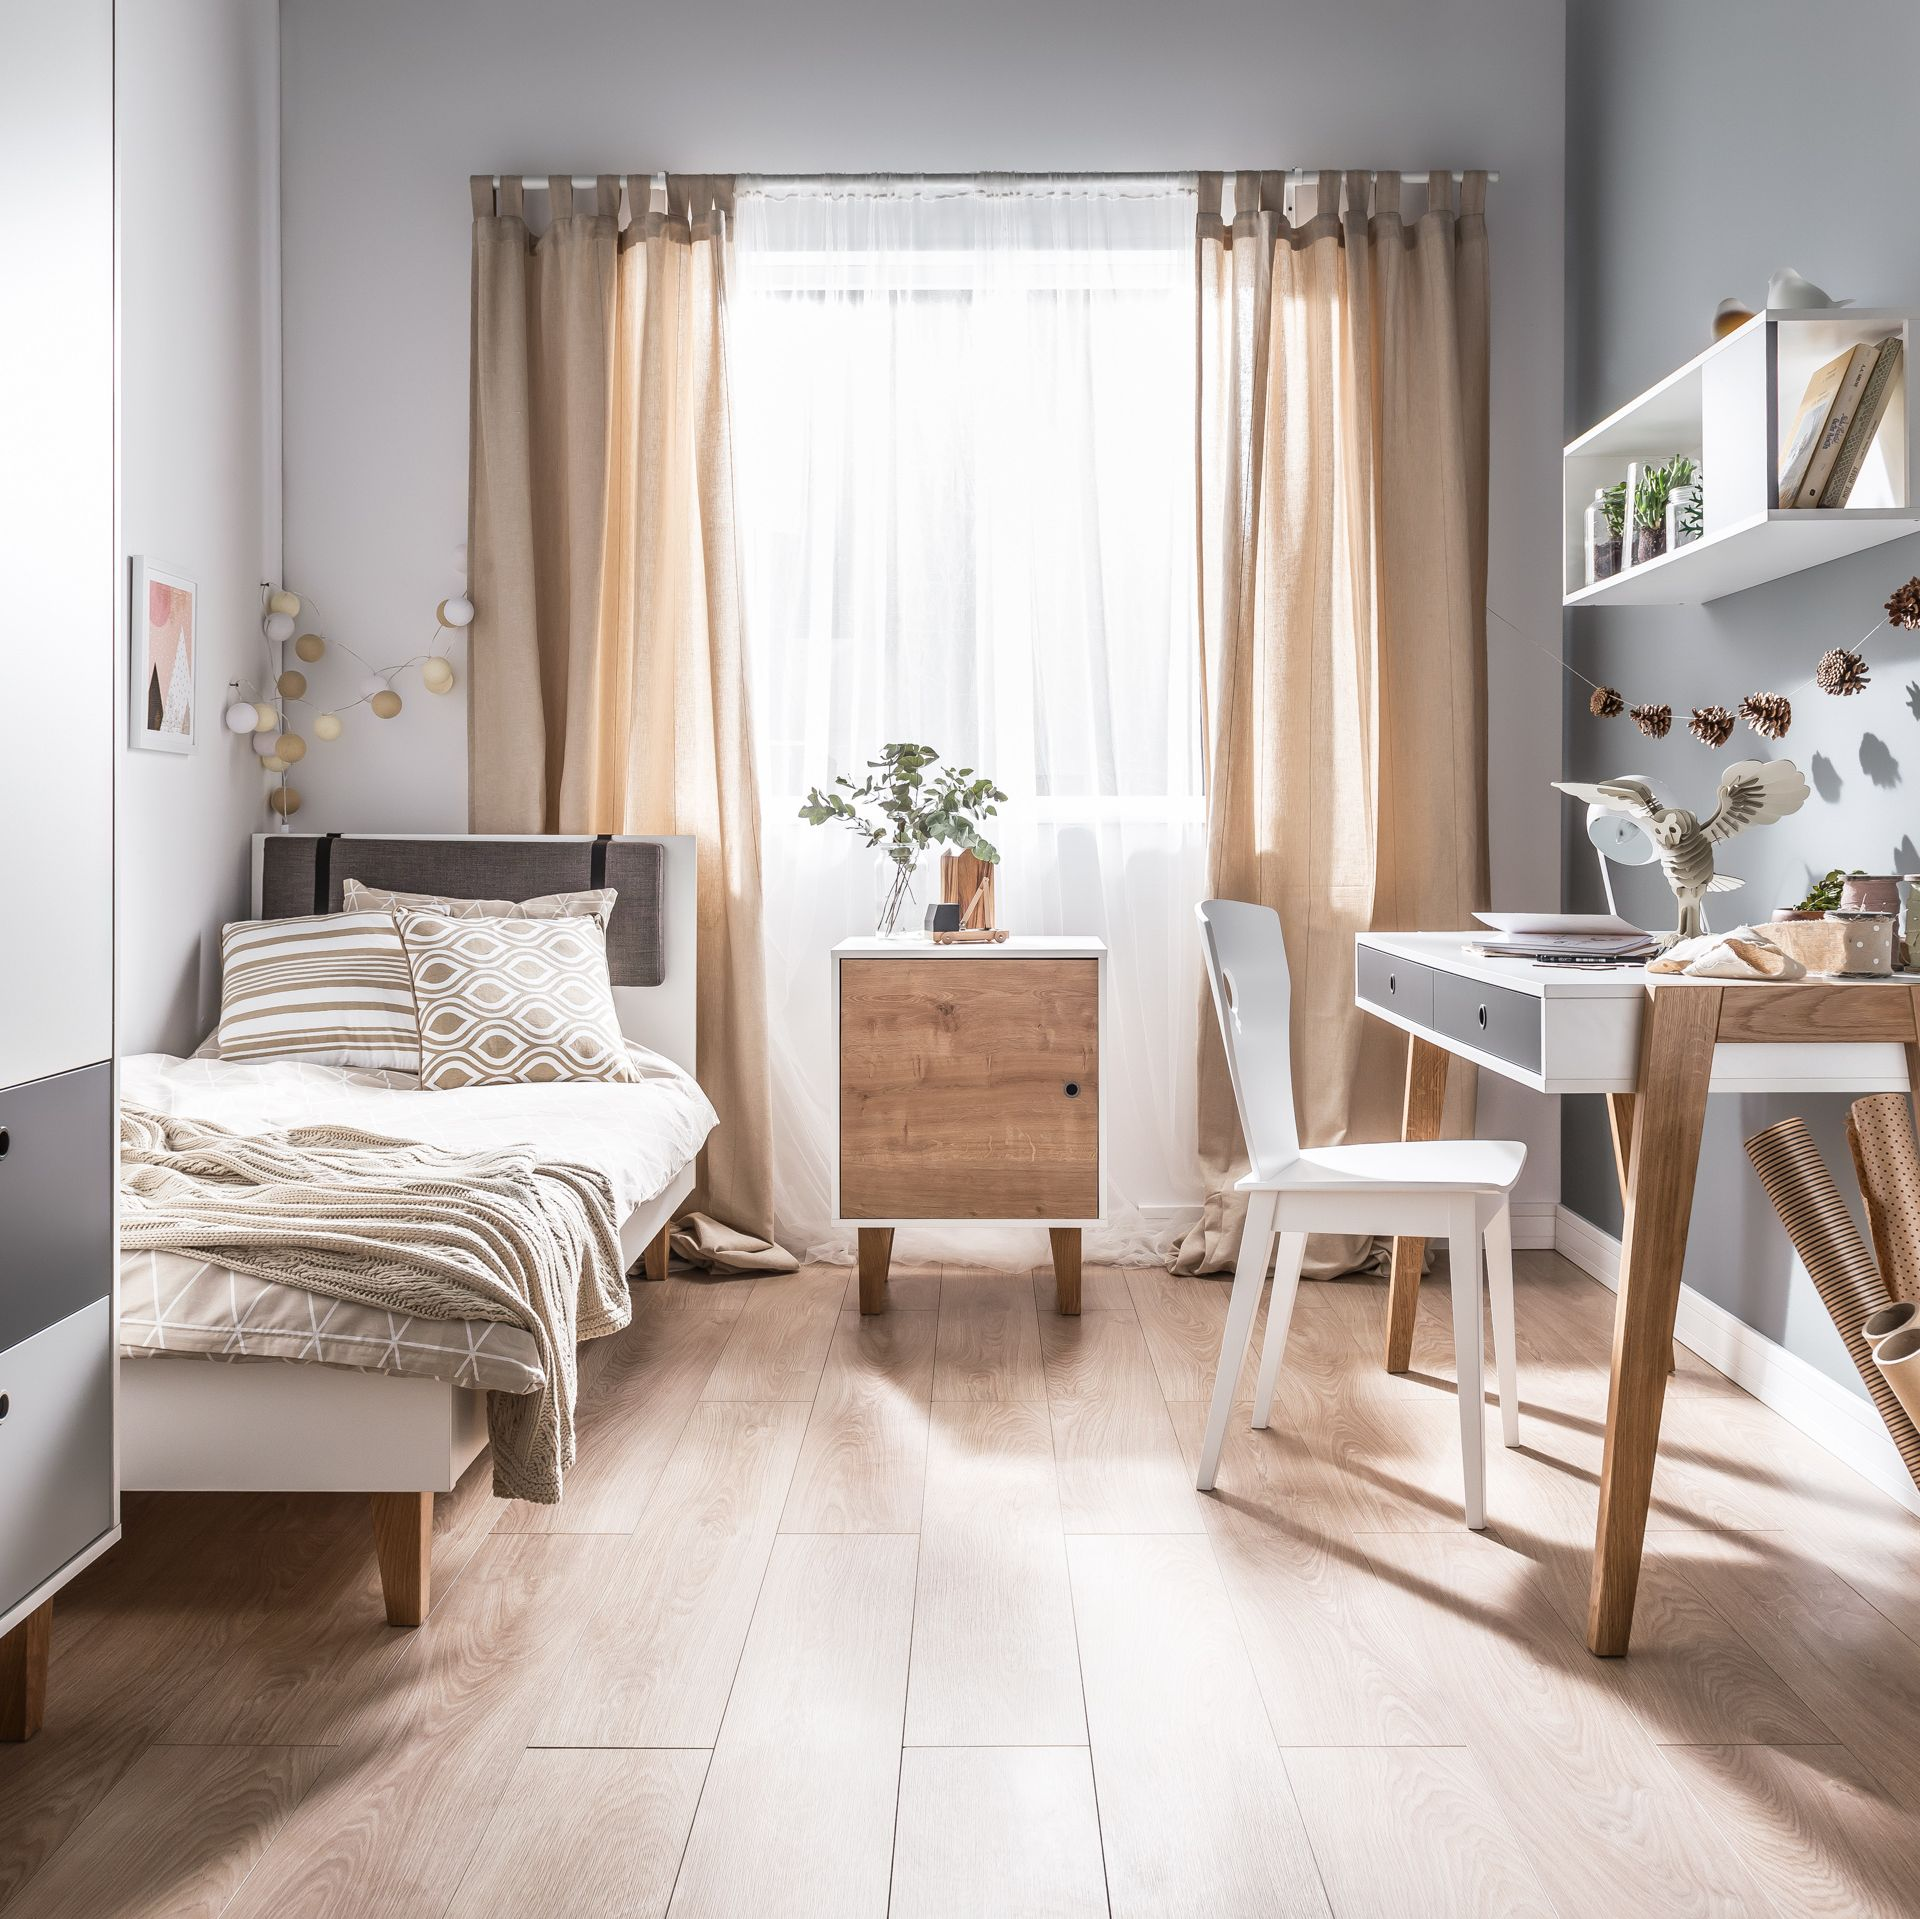 22+ Decorating Ideas For Small Bedrooms Cheap